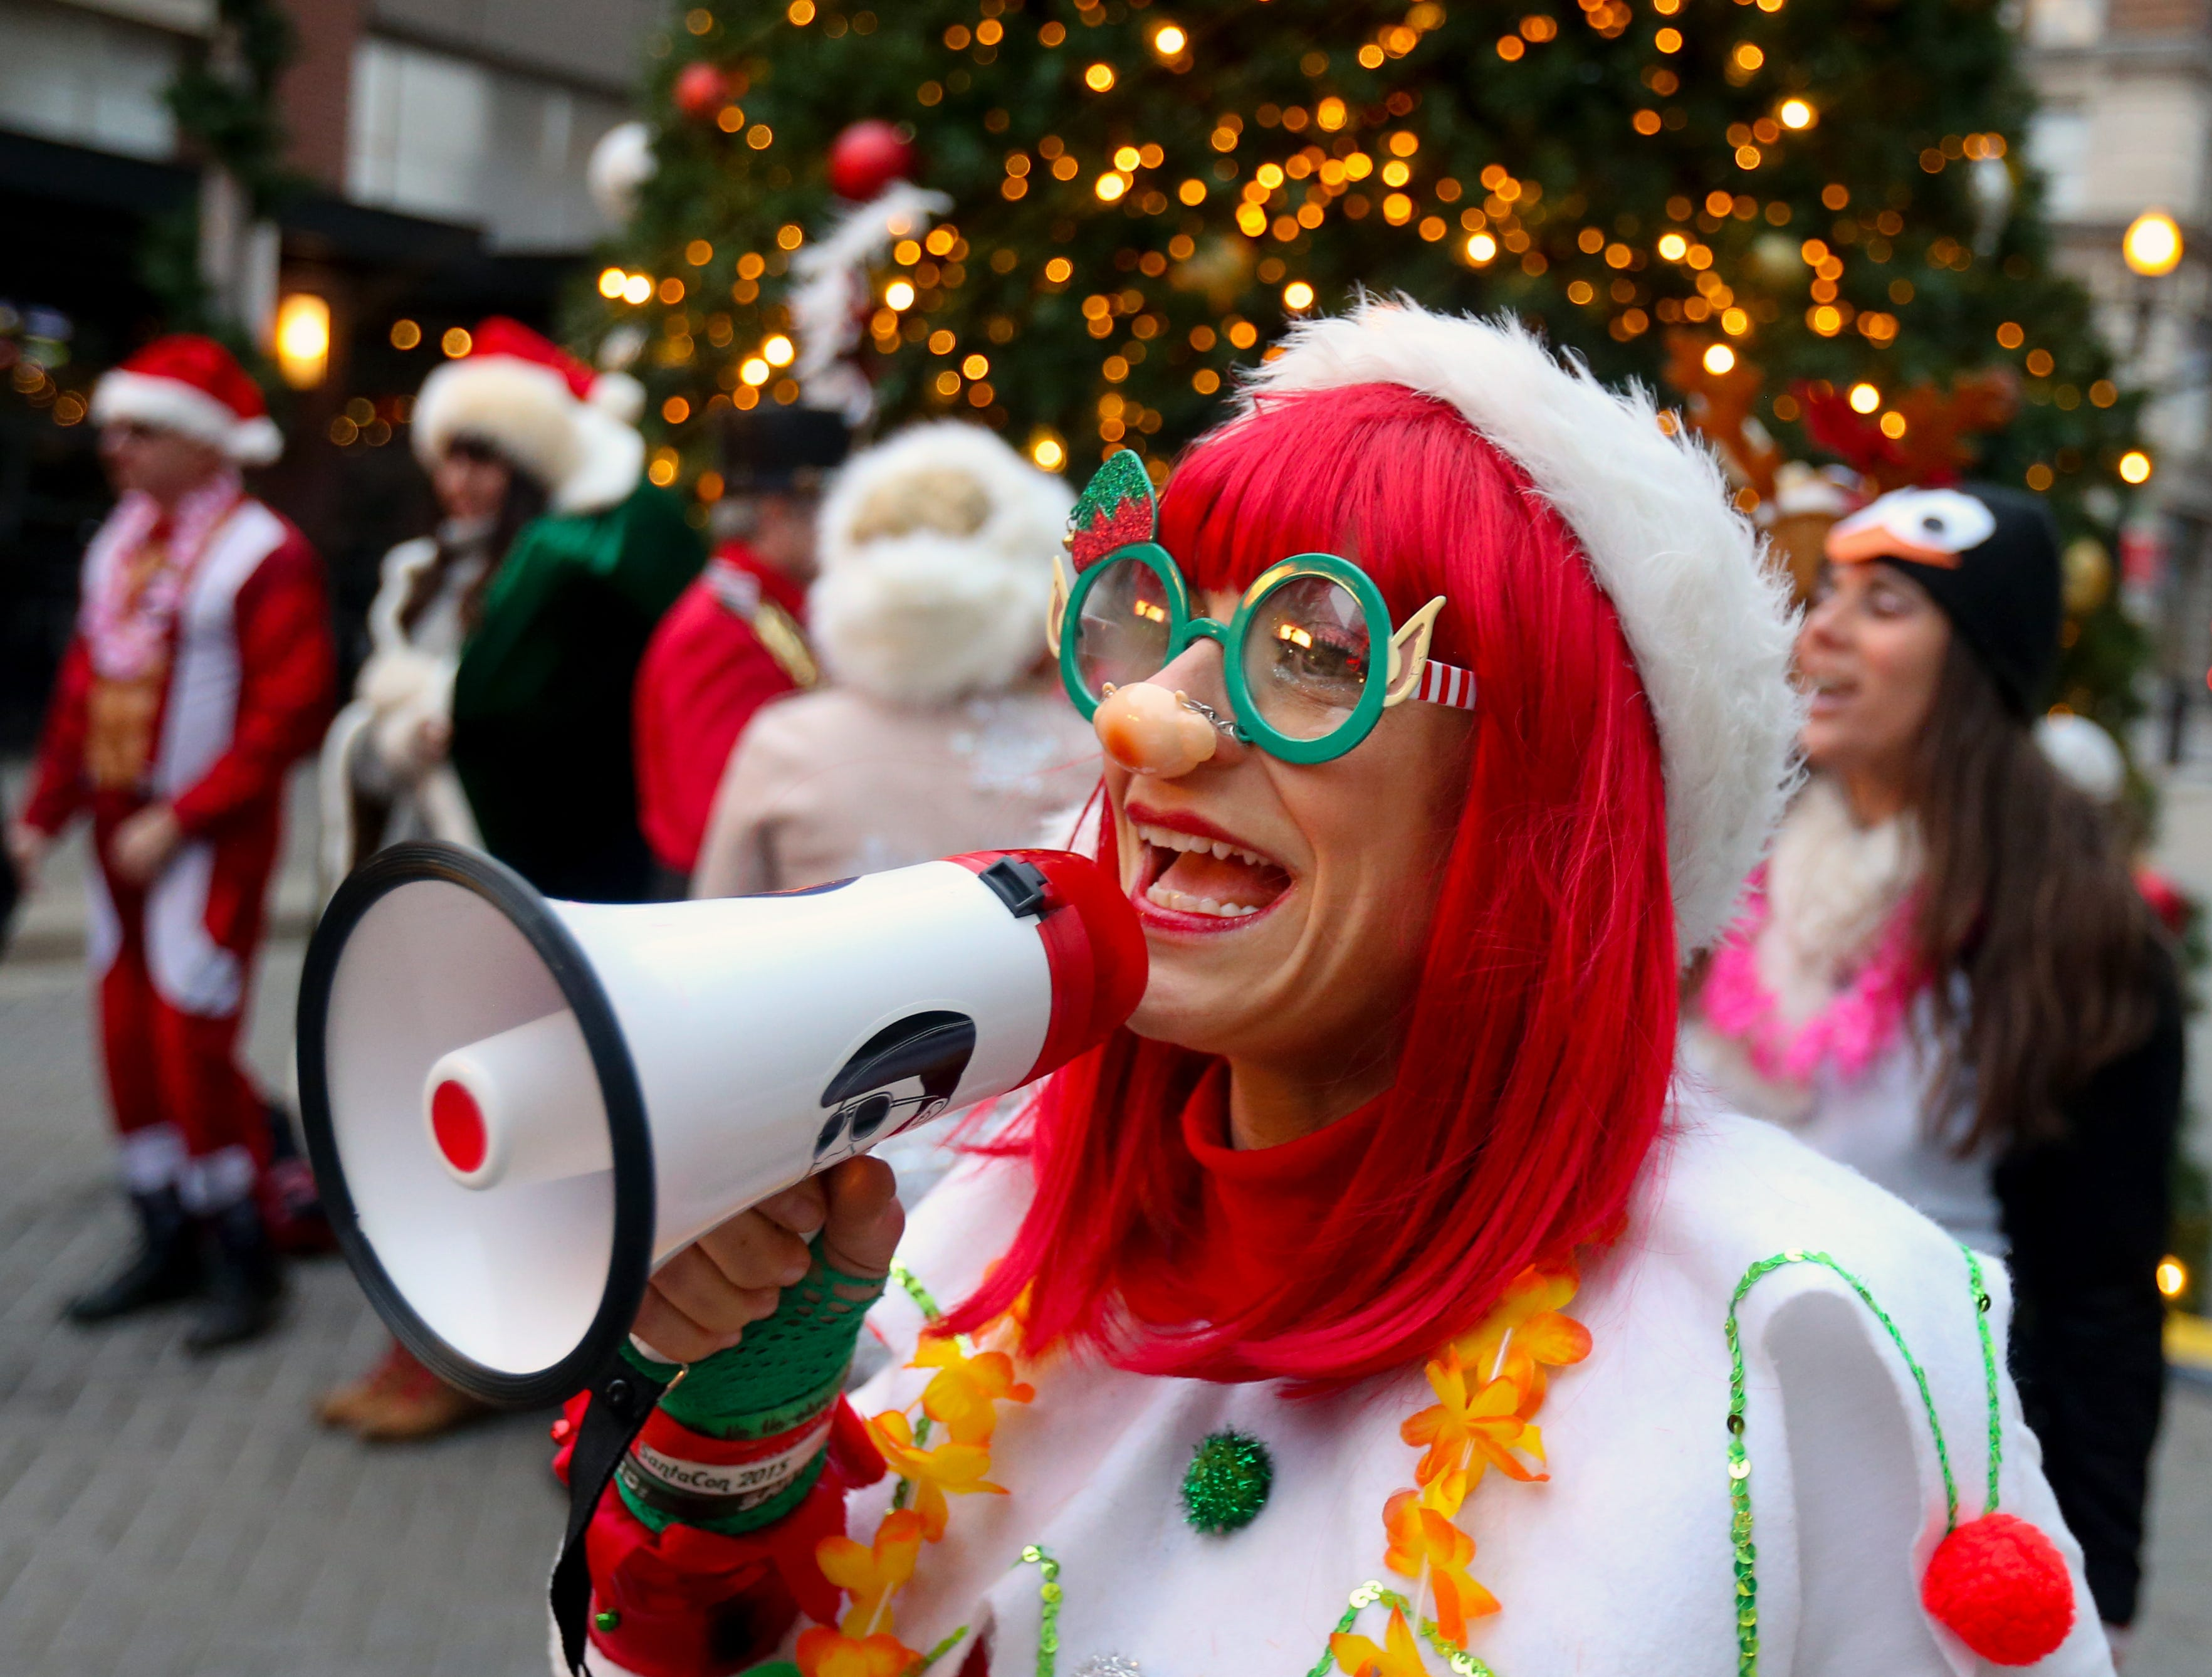 Jenna Ankenbrand, one of Santa's workers, leads the SantaCon crowd to the next location.    Dec. 8, 2018